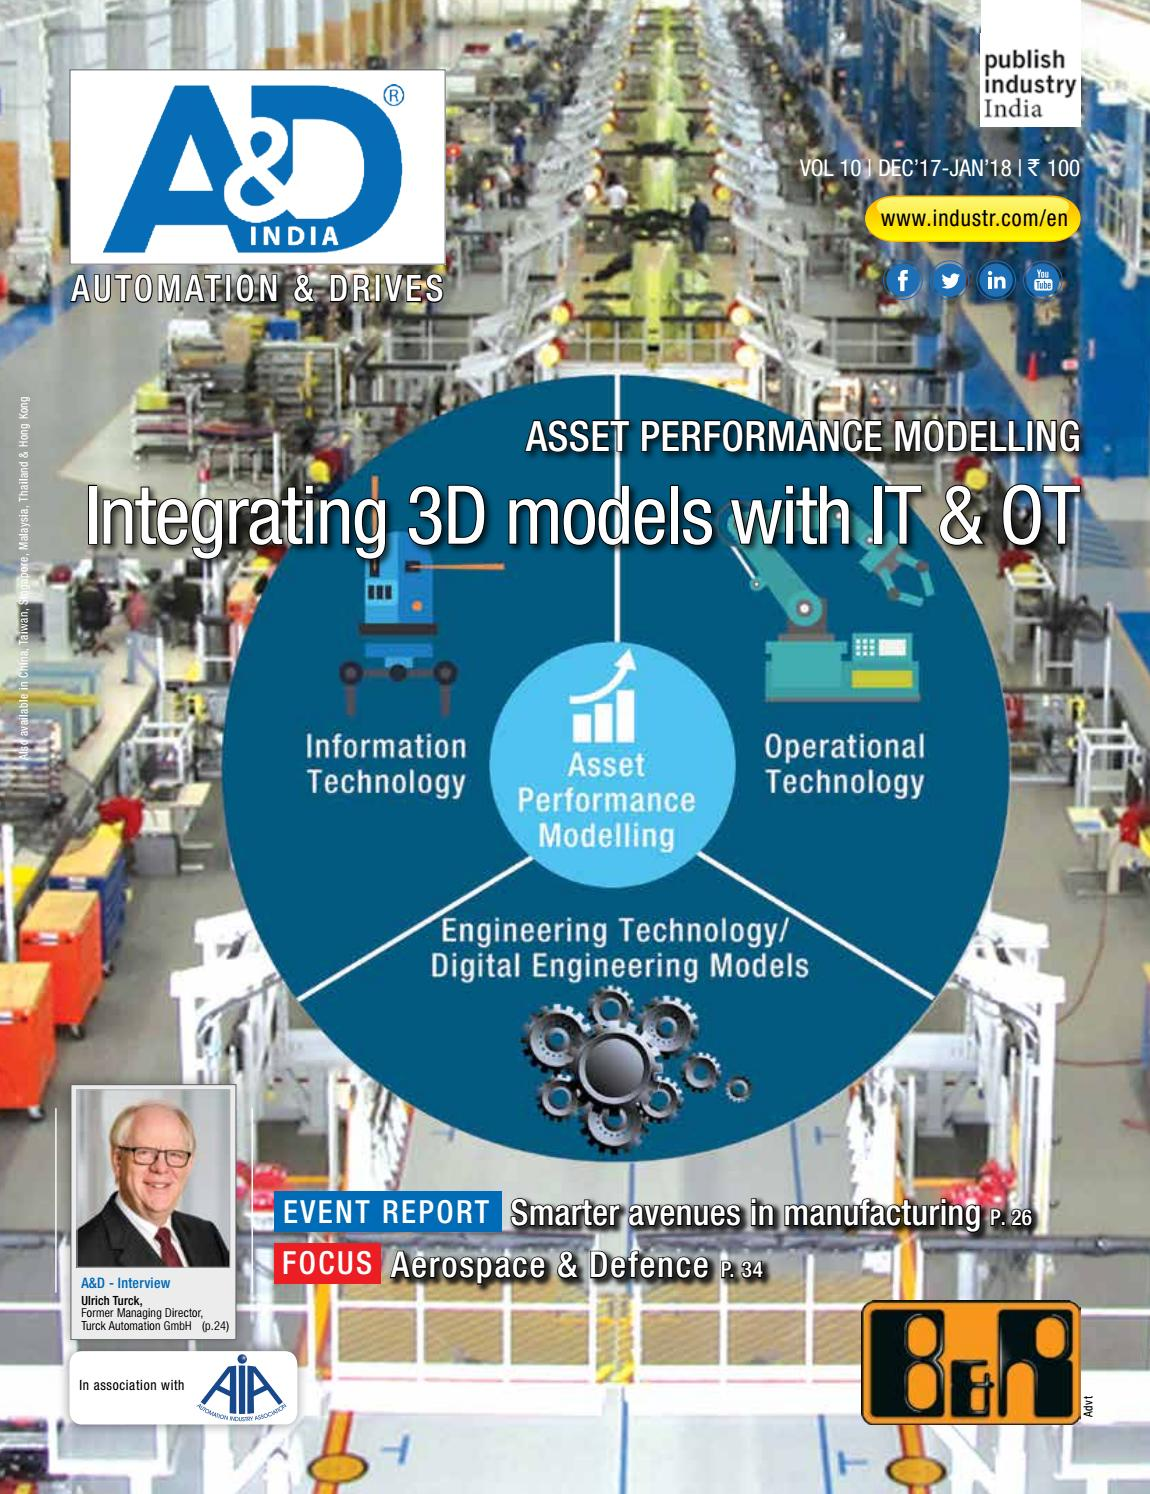 Au0026D Dec 17   Jan 18 By Publish Industry India   Issuu